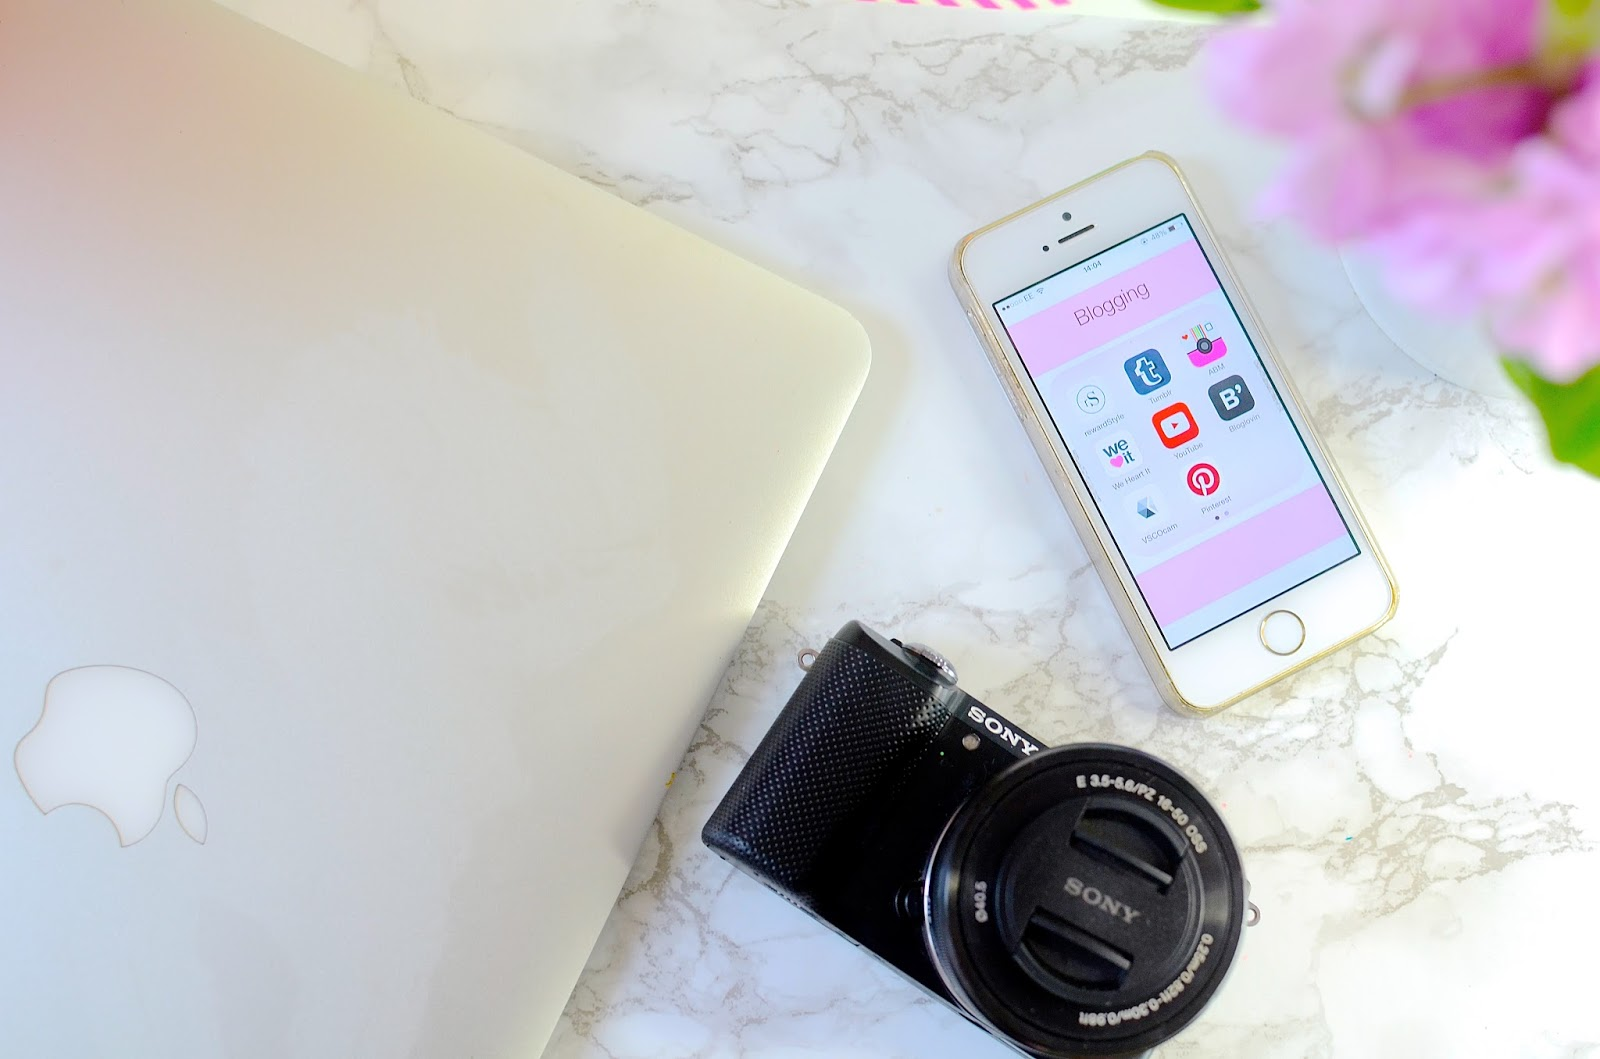 lifestyle, blogging, blogging advice, useful apps, apps for blogging, best apps for blogging, bloglovin, vsco cam, content, dizzybrunette3 blog